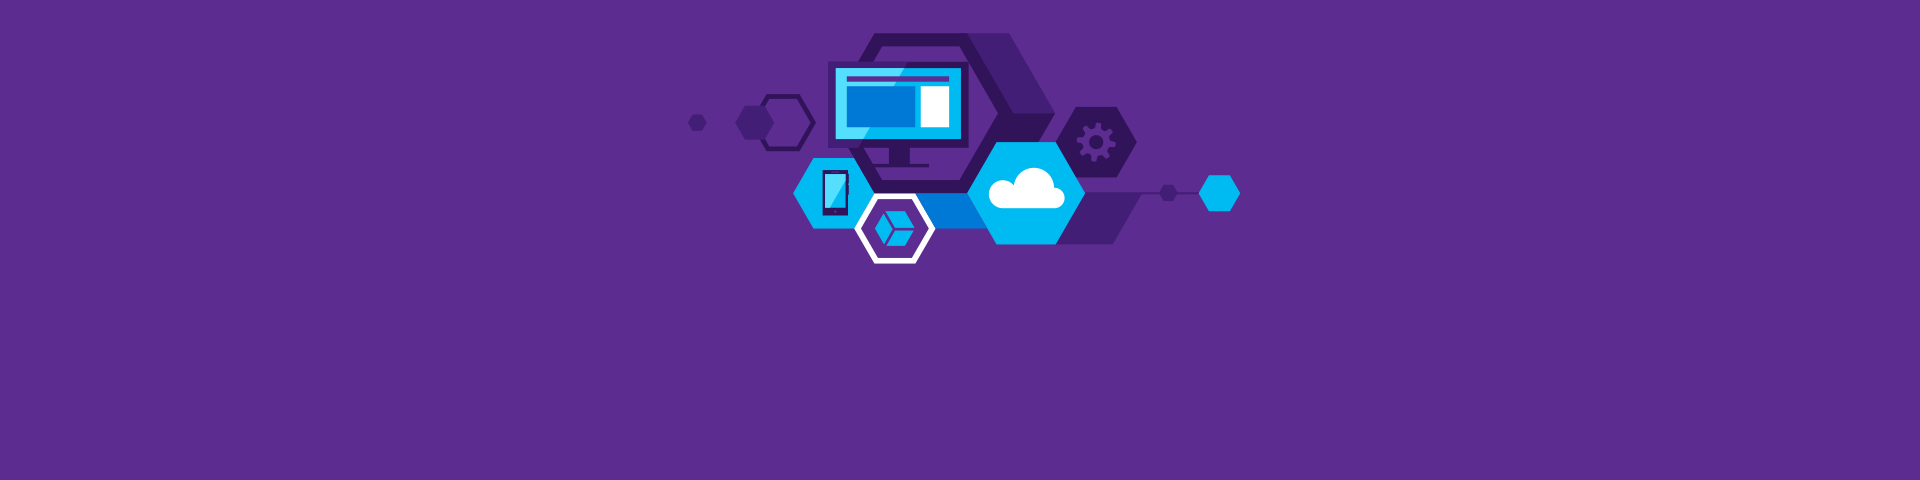 PC, phone, cloud and other tech icons